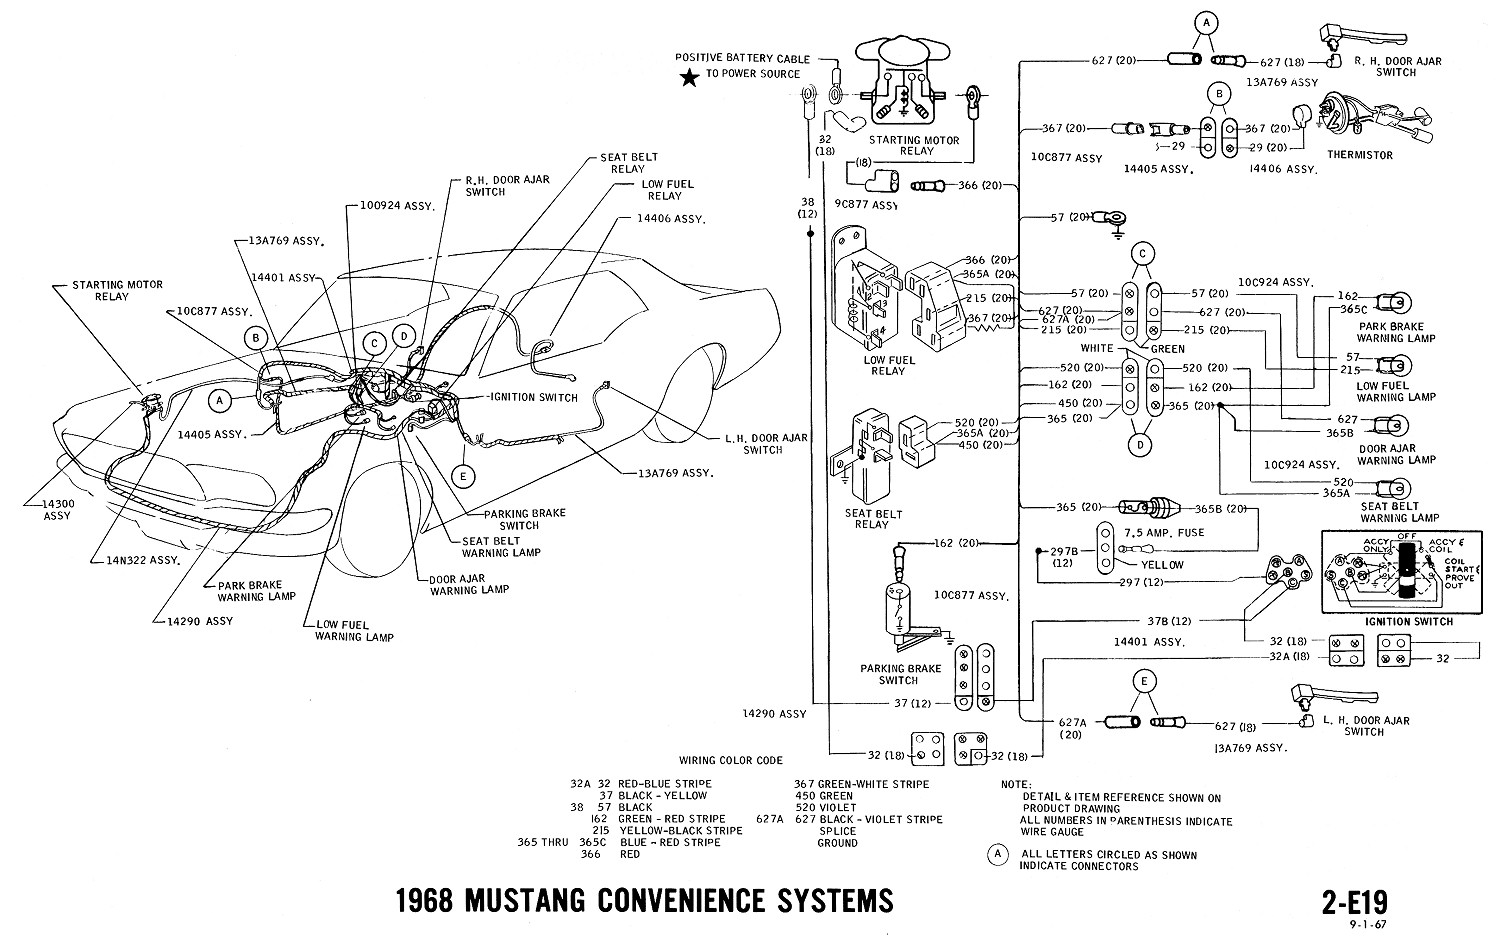 1968 Mustang Wiring Diagrams And Vacuum Schematics Average Joe Router Diagram Convenience Systems